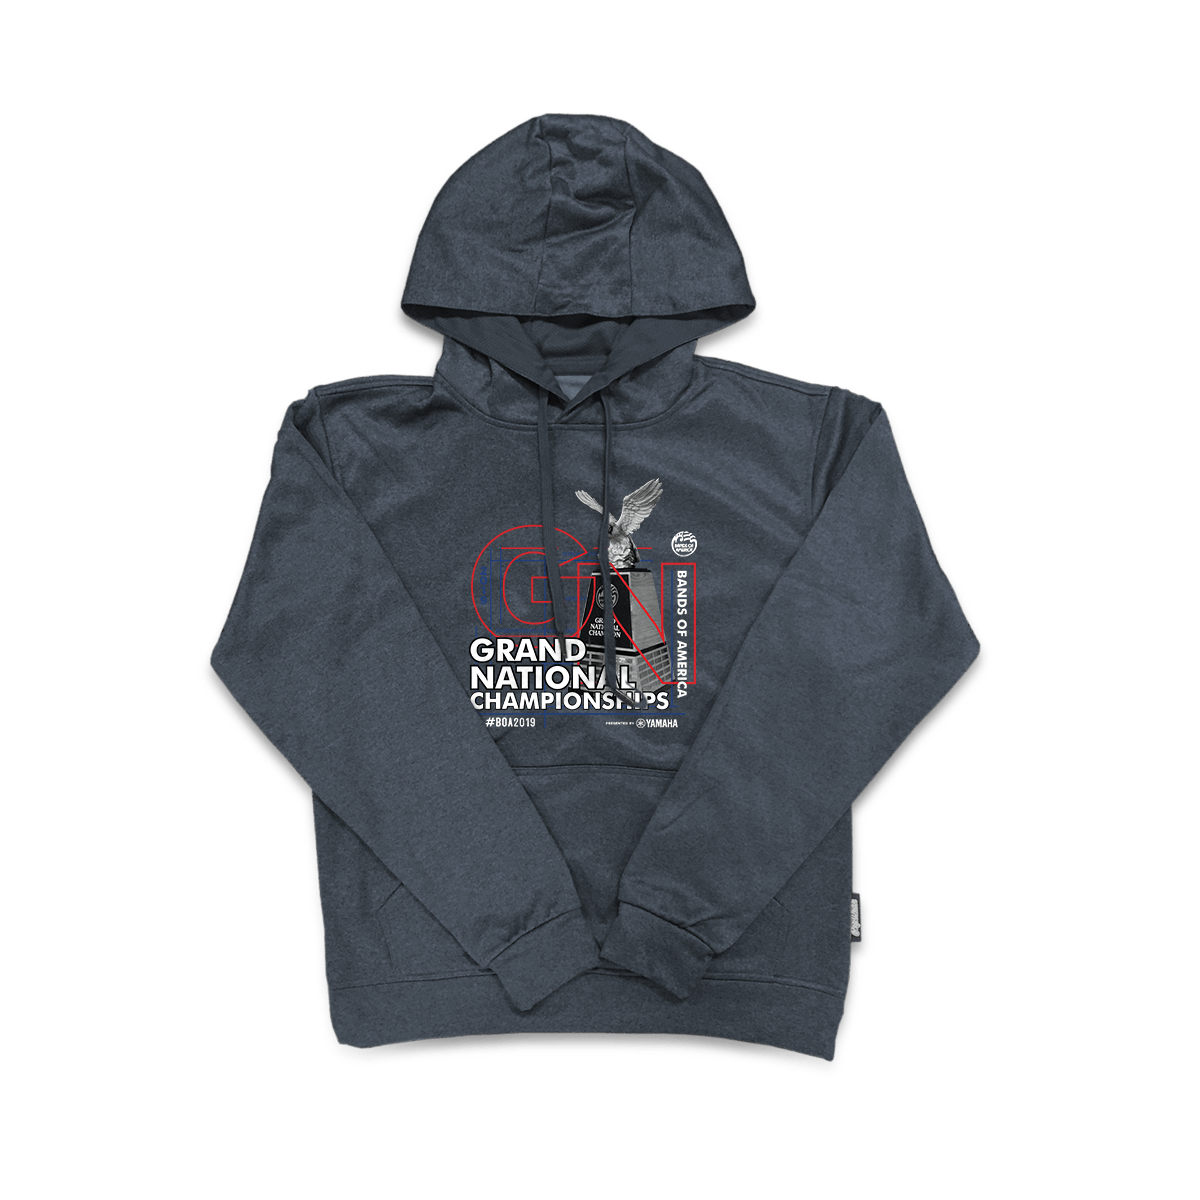 2019 BOA Grand Nationals Performance Hoodie